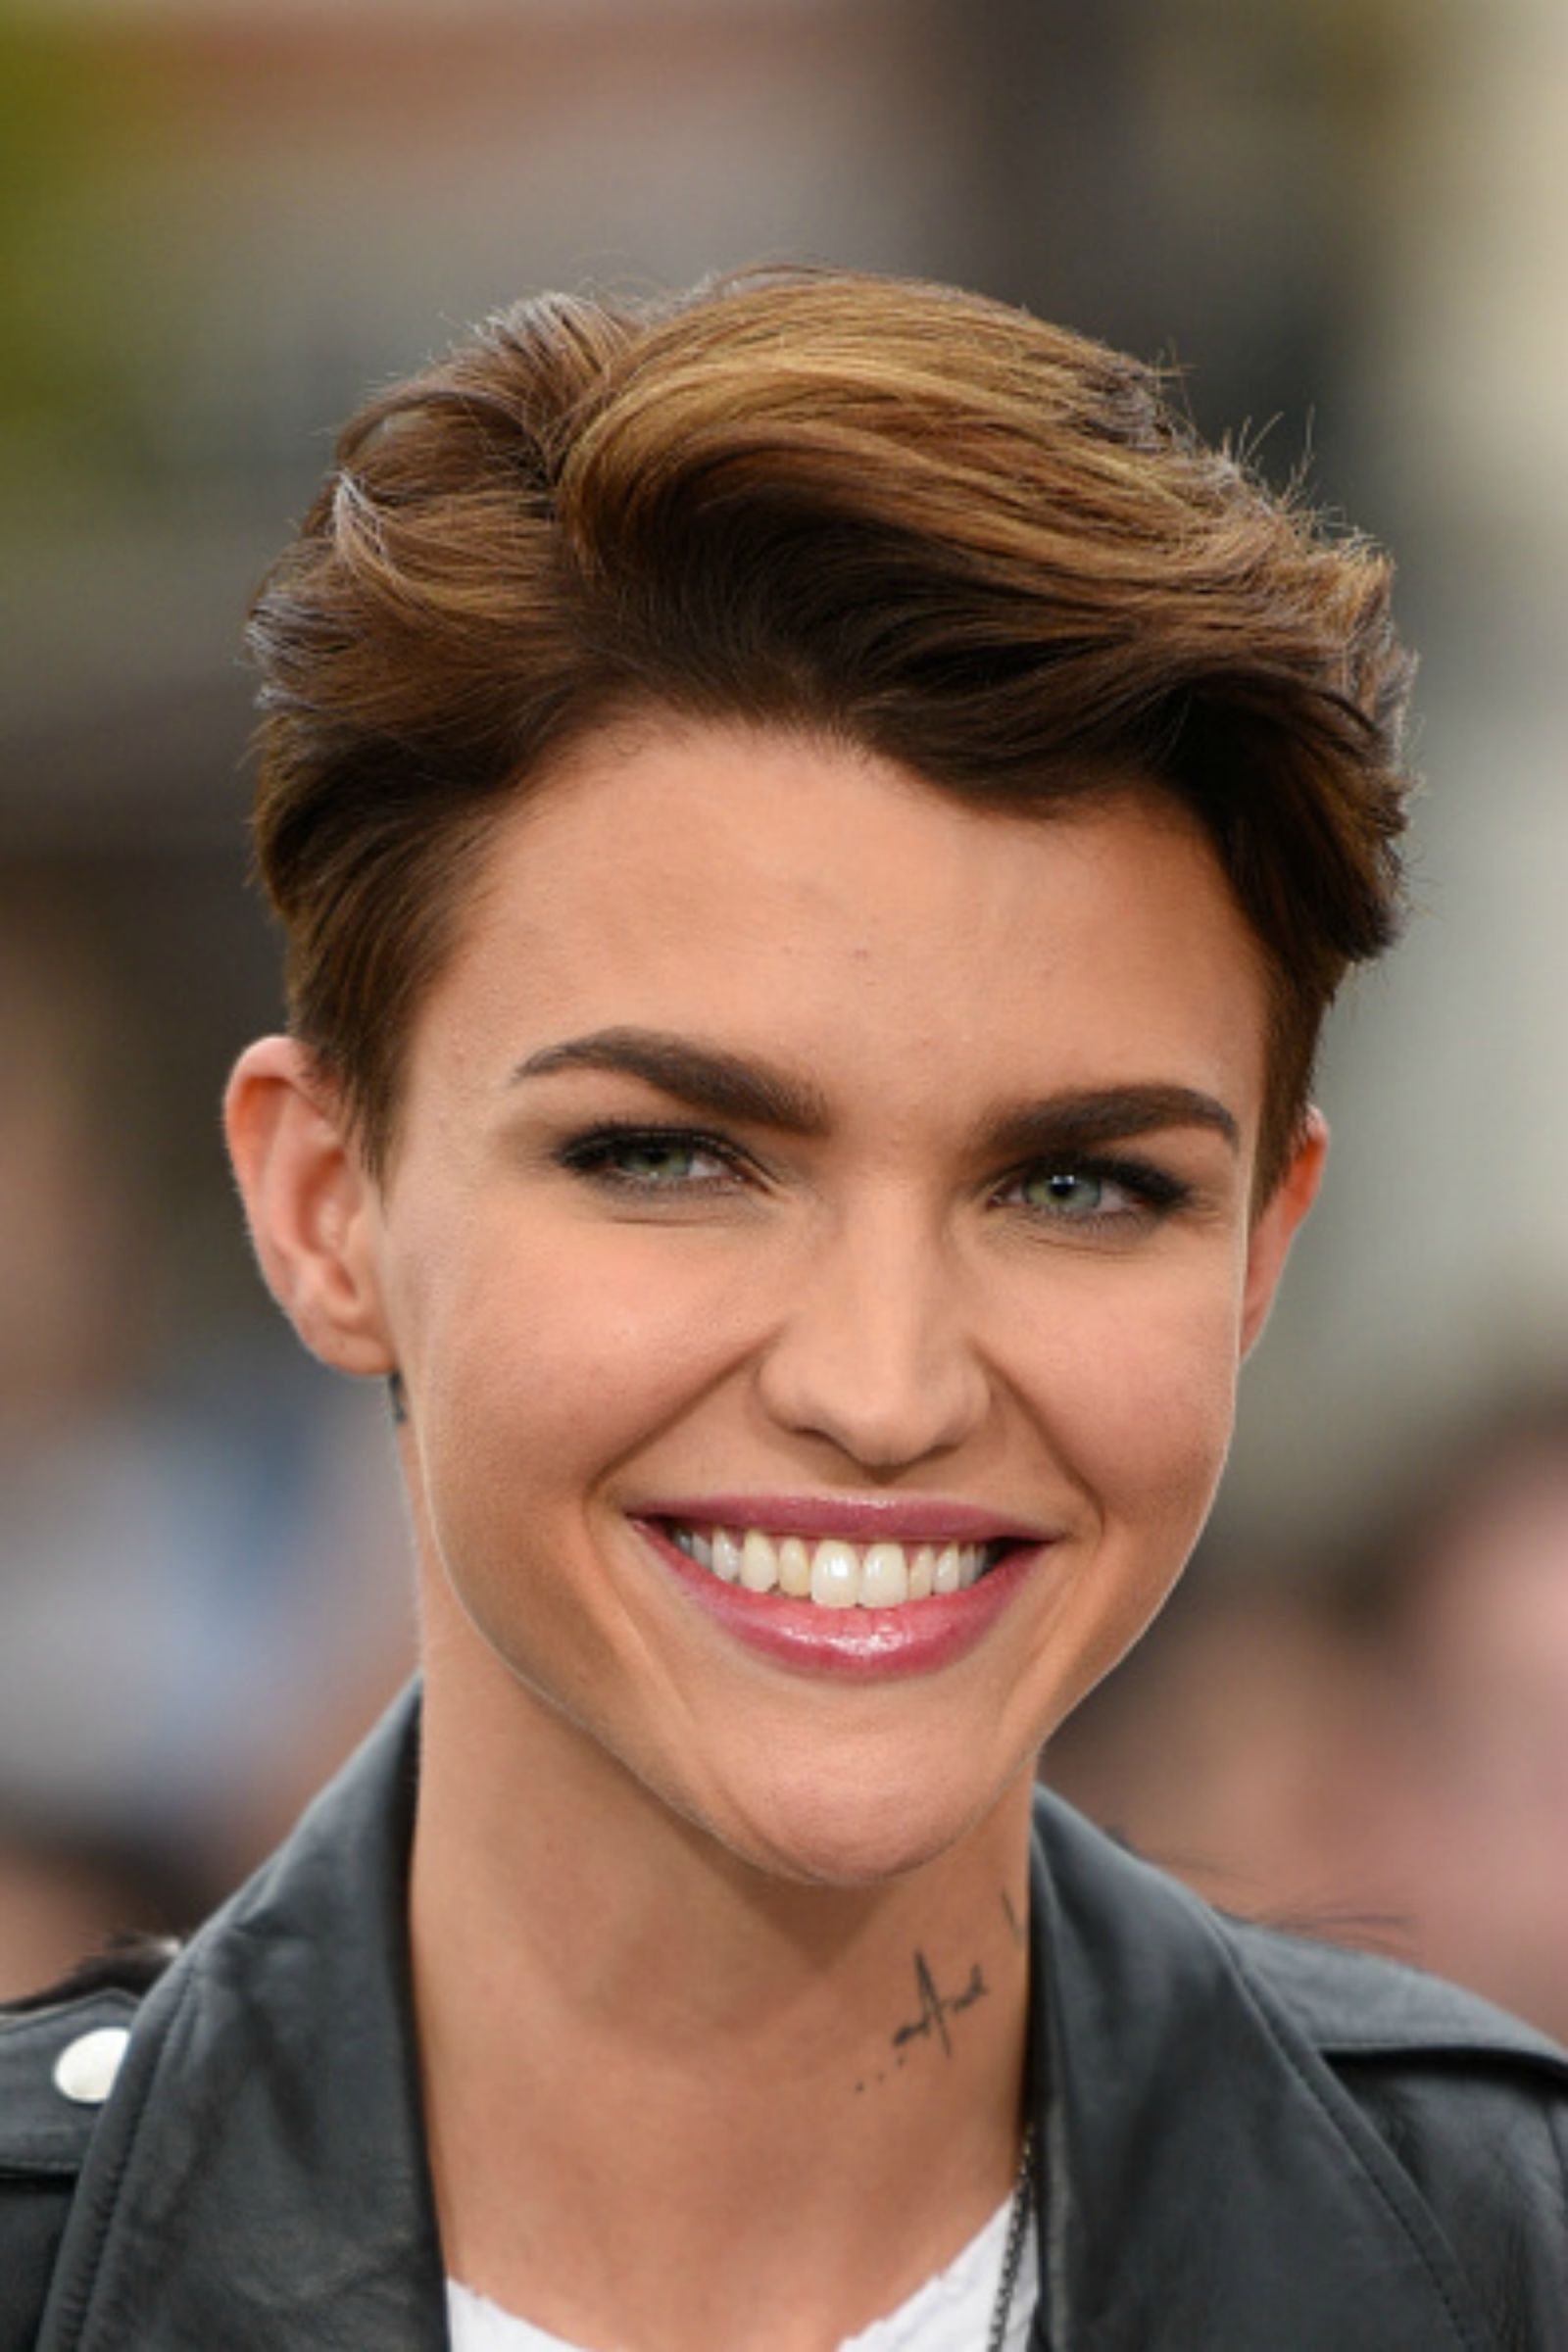 Terrific 16 Short Hairstyles For Thick Hair 2016 Women39S Haircuts For Hairstyles For Women Draintrainus